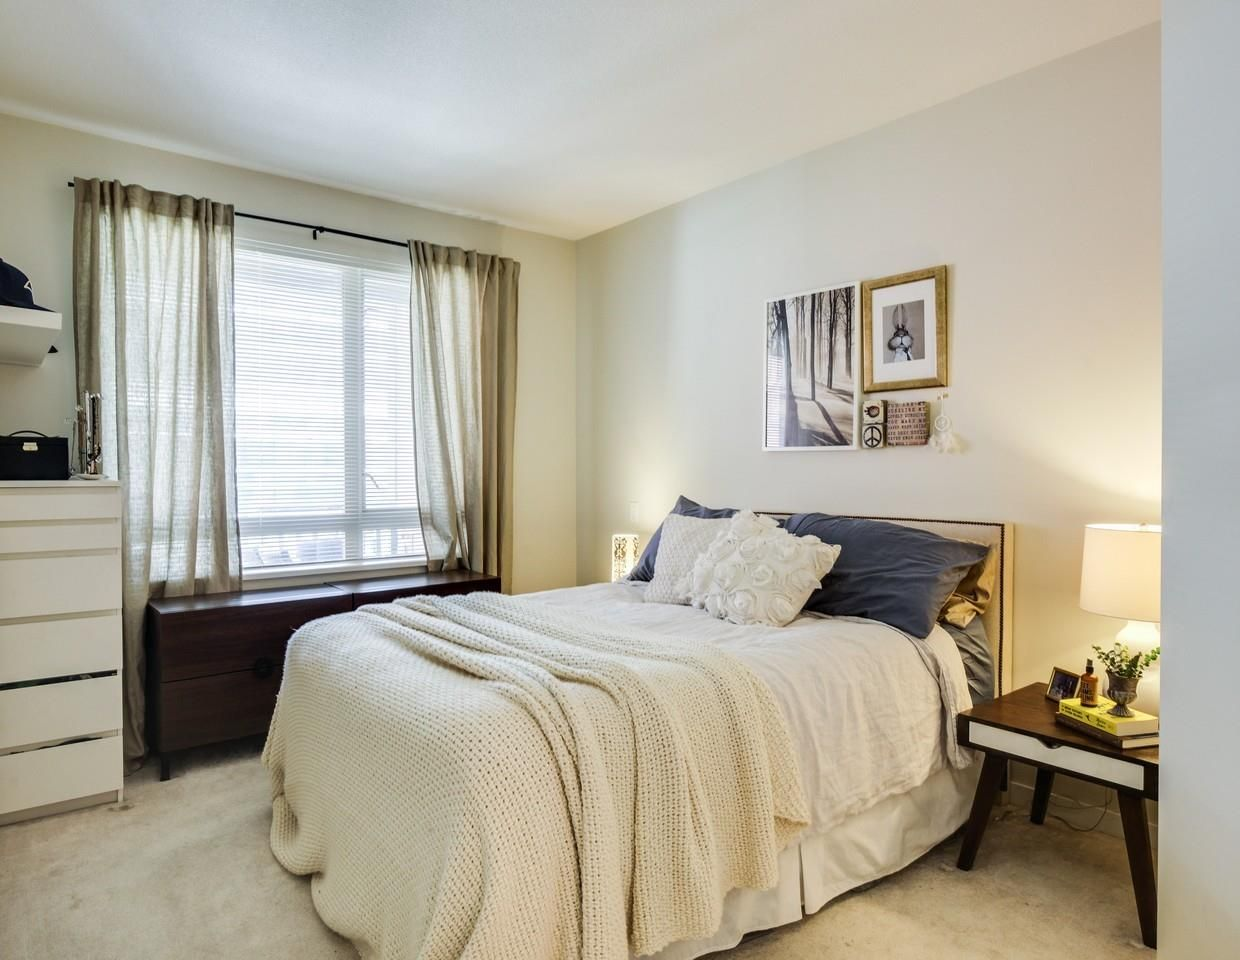 Photo 9: Photos: 319 119 W 22ND STREET in North Vancouver: Central Lonsdale Condo for sale : MLS®# R2047201